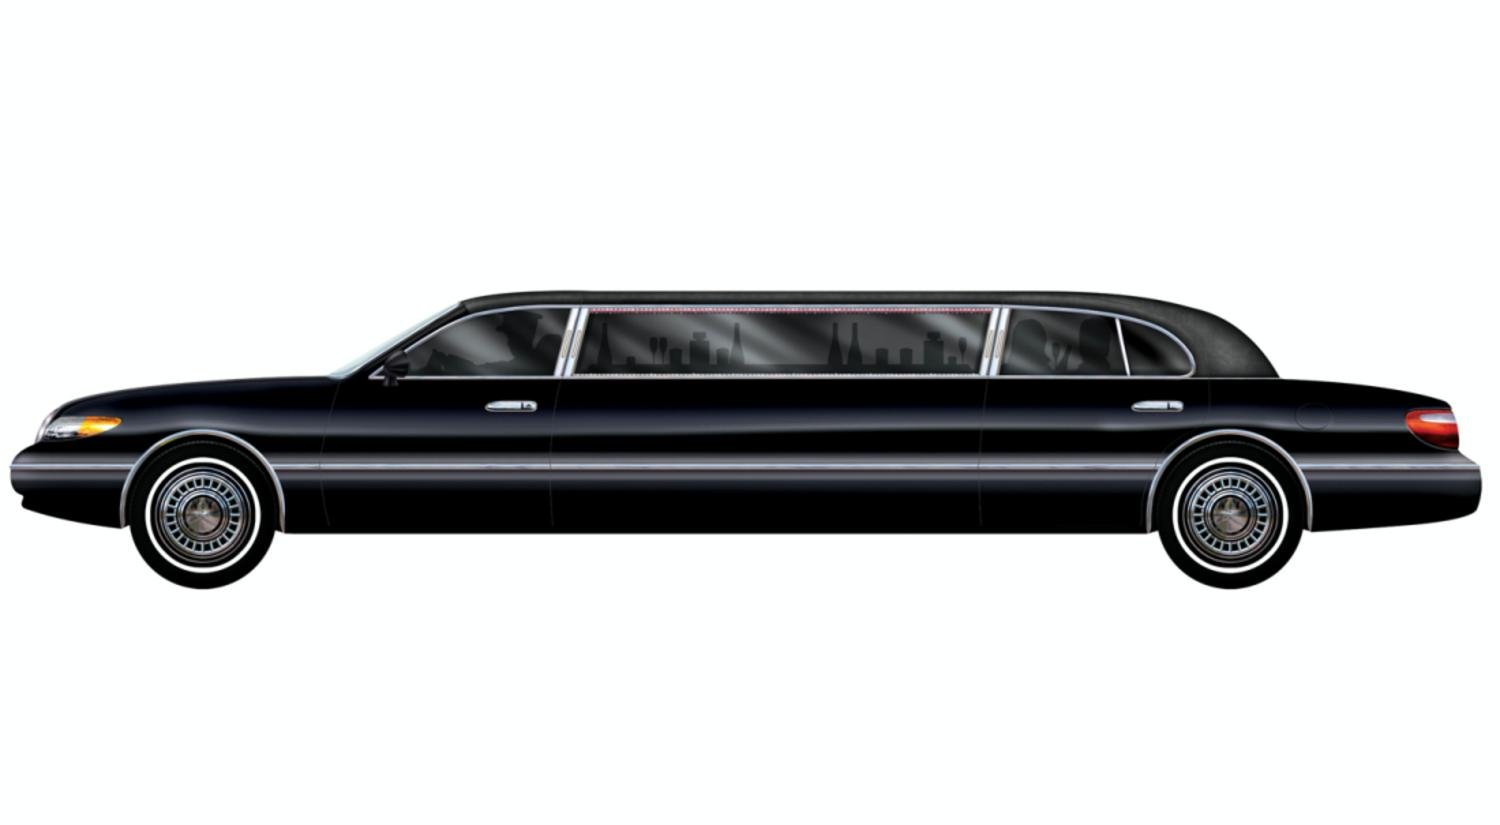 Pack of 12 Hollywood Movie Theme Jointed Black Limo Car Party Decorations 6'